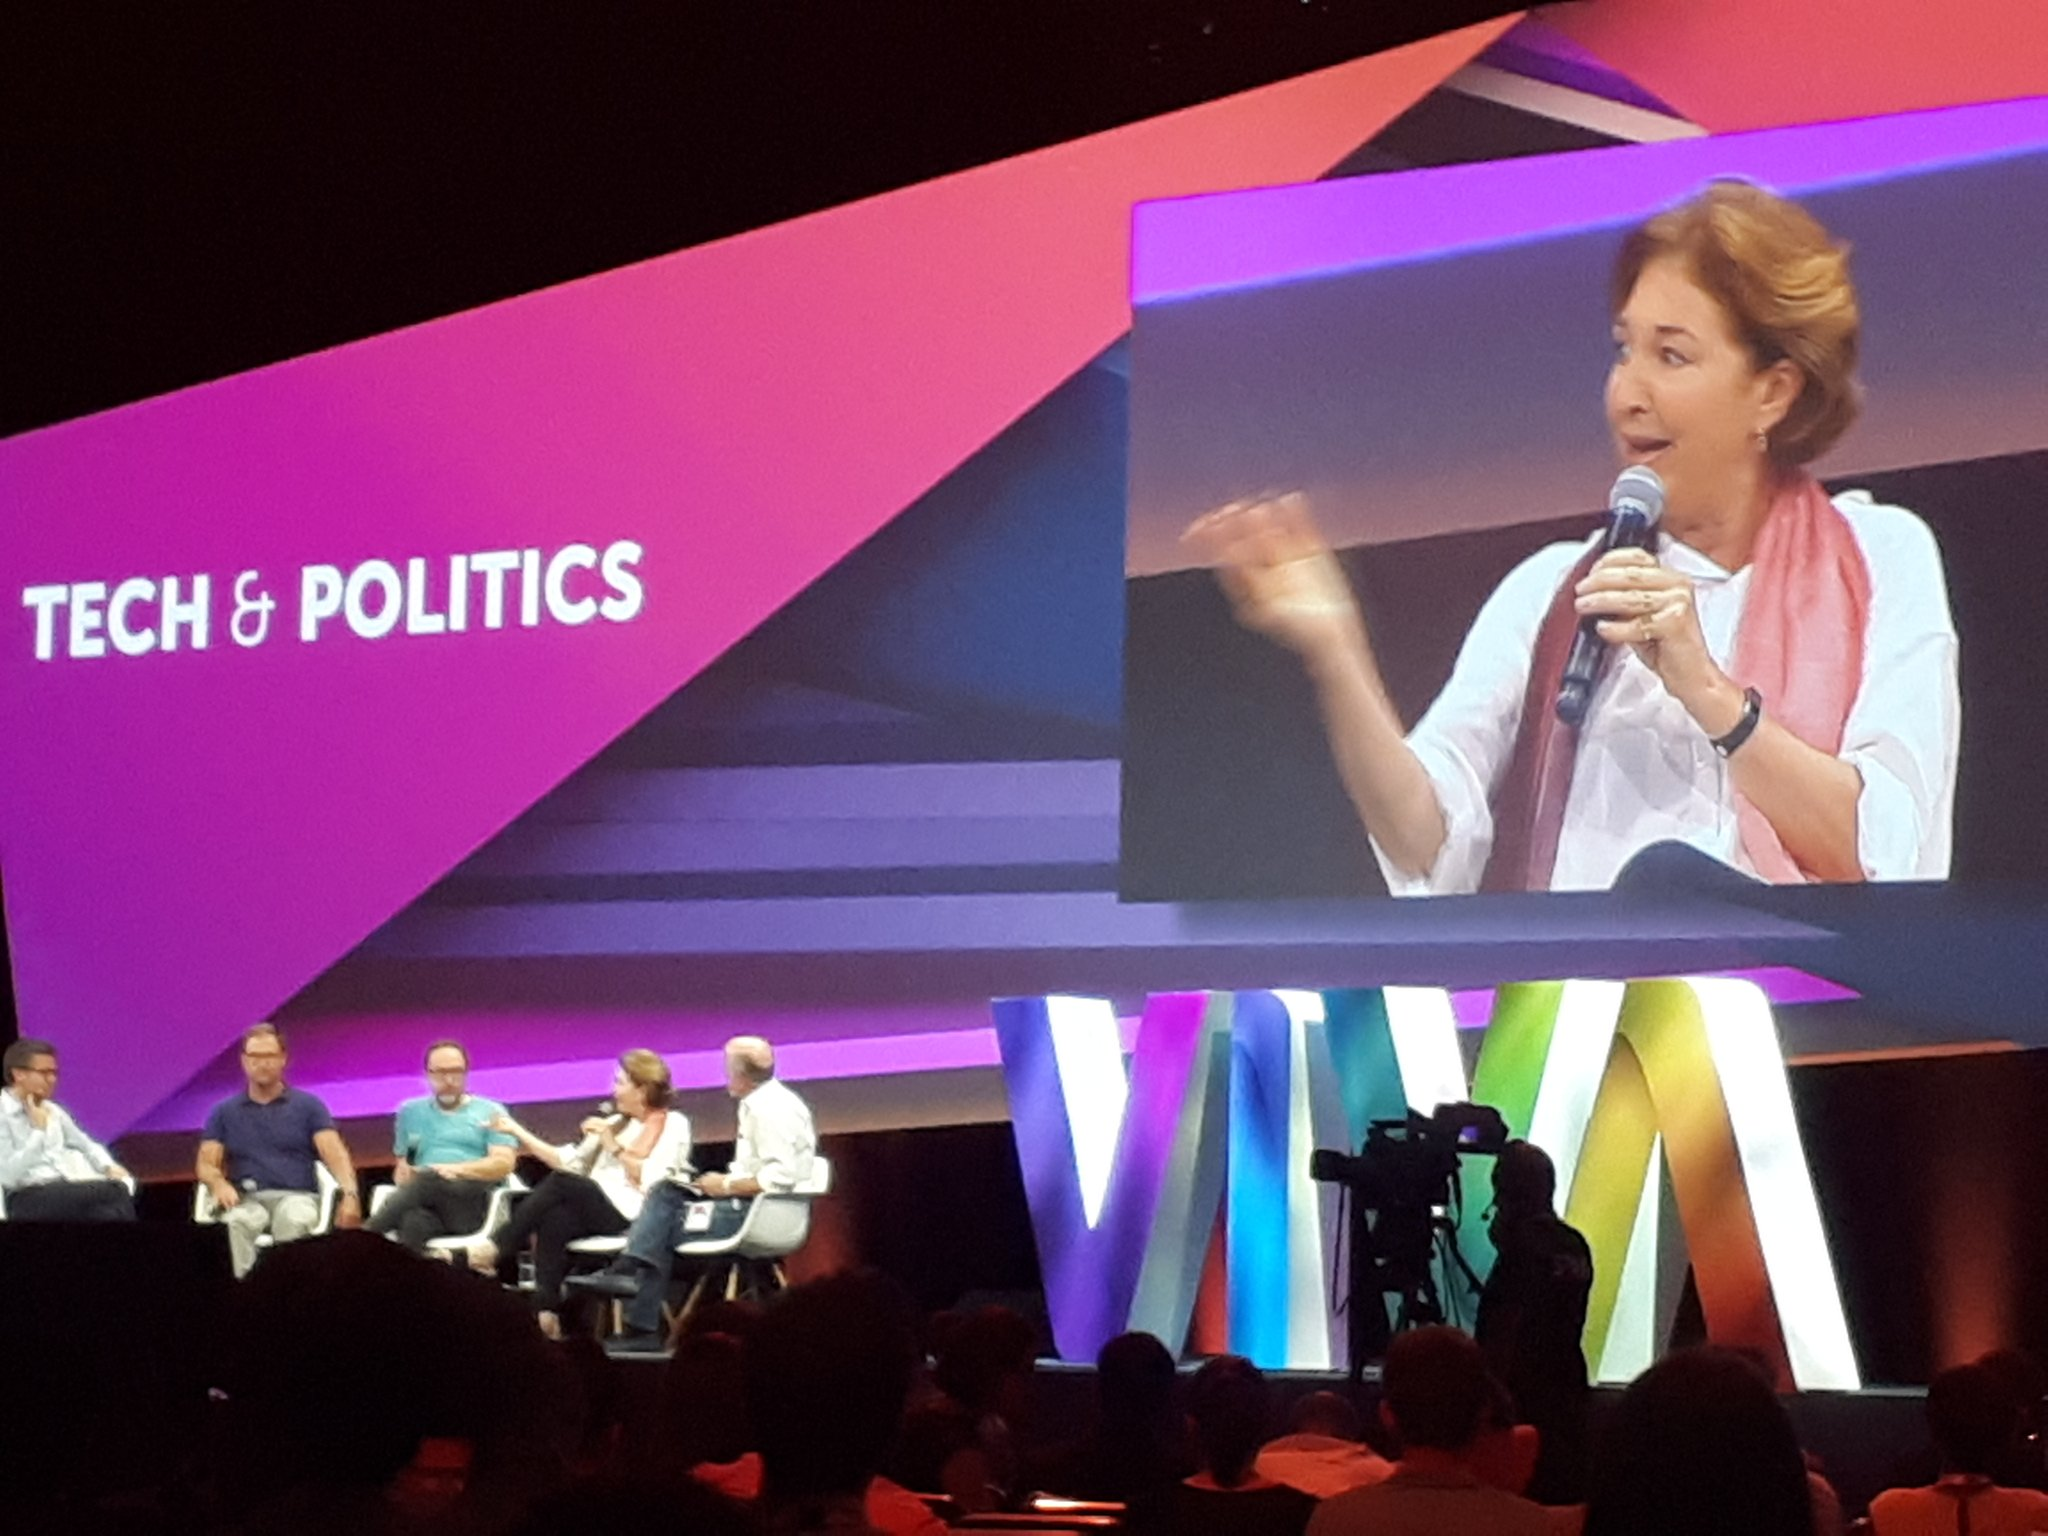 """The biggest divide in the #civictech world is the struggle between open and close."" cc @SlaughterAM #VivaTech #VivaTech2017 https://t.co/RFDMHkoUjg"